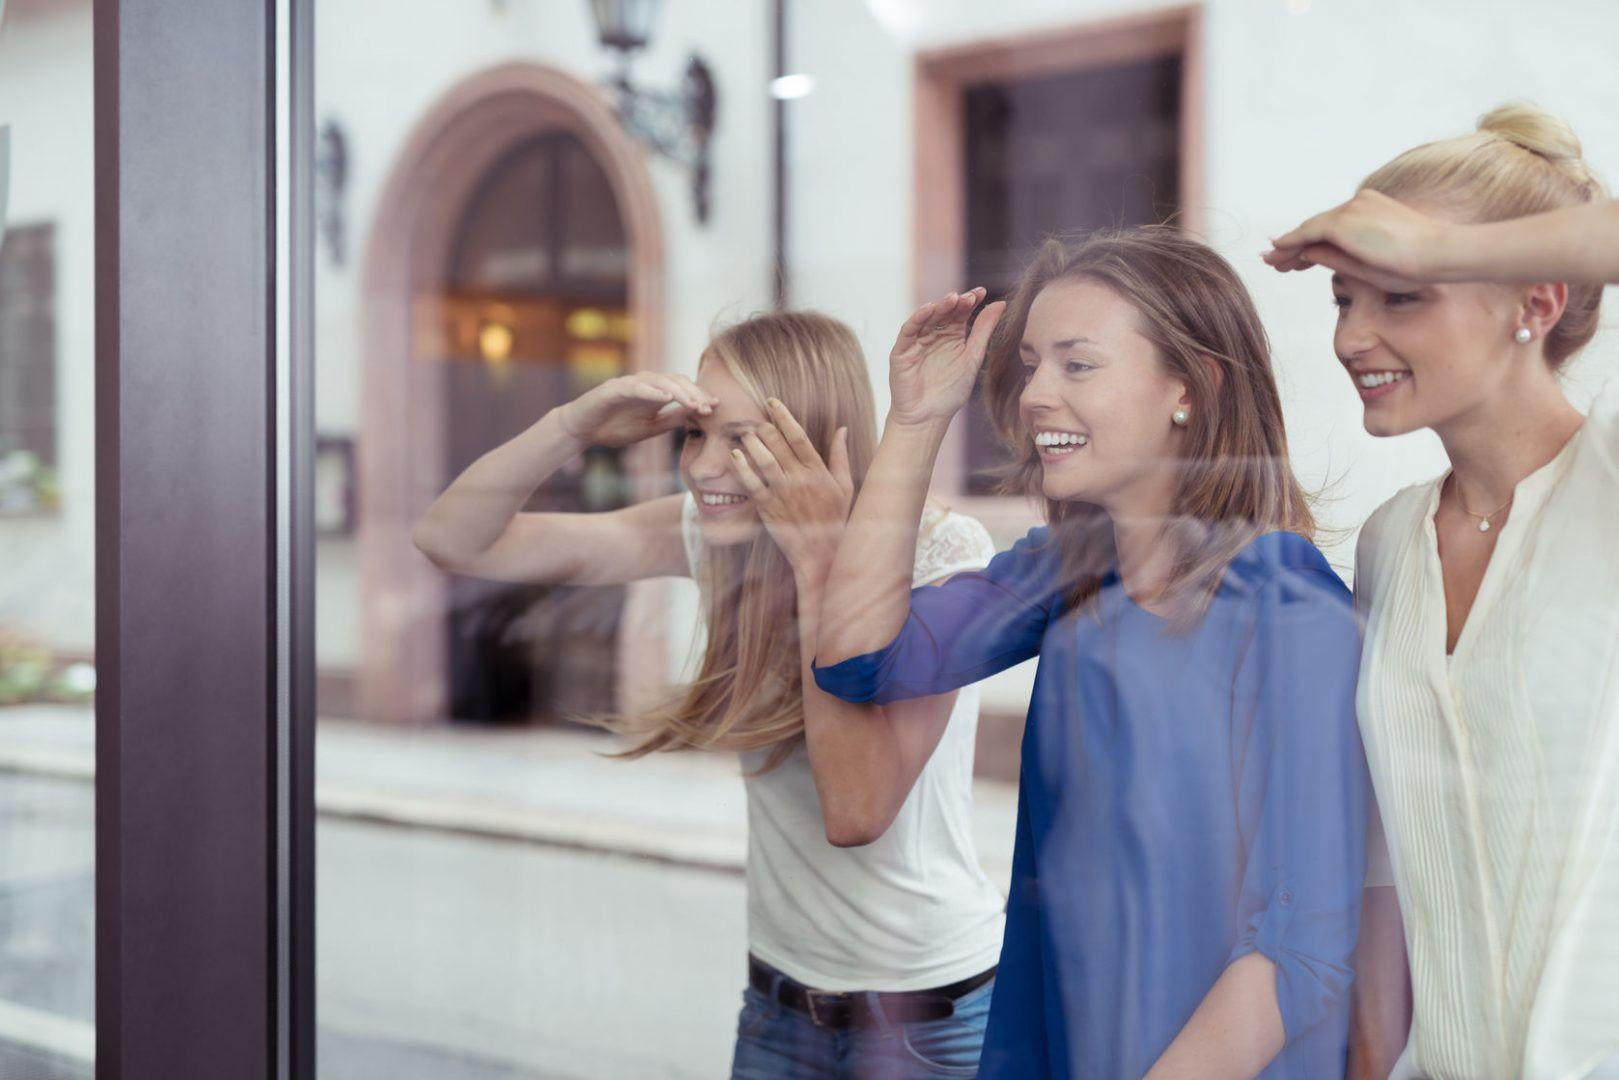 Retailers create better in-store experiences with retail technology to help shoppers.